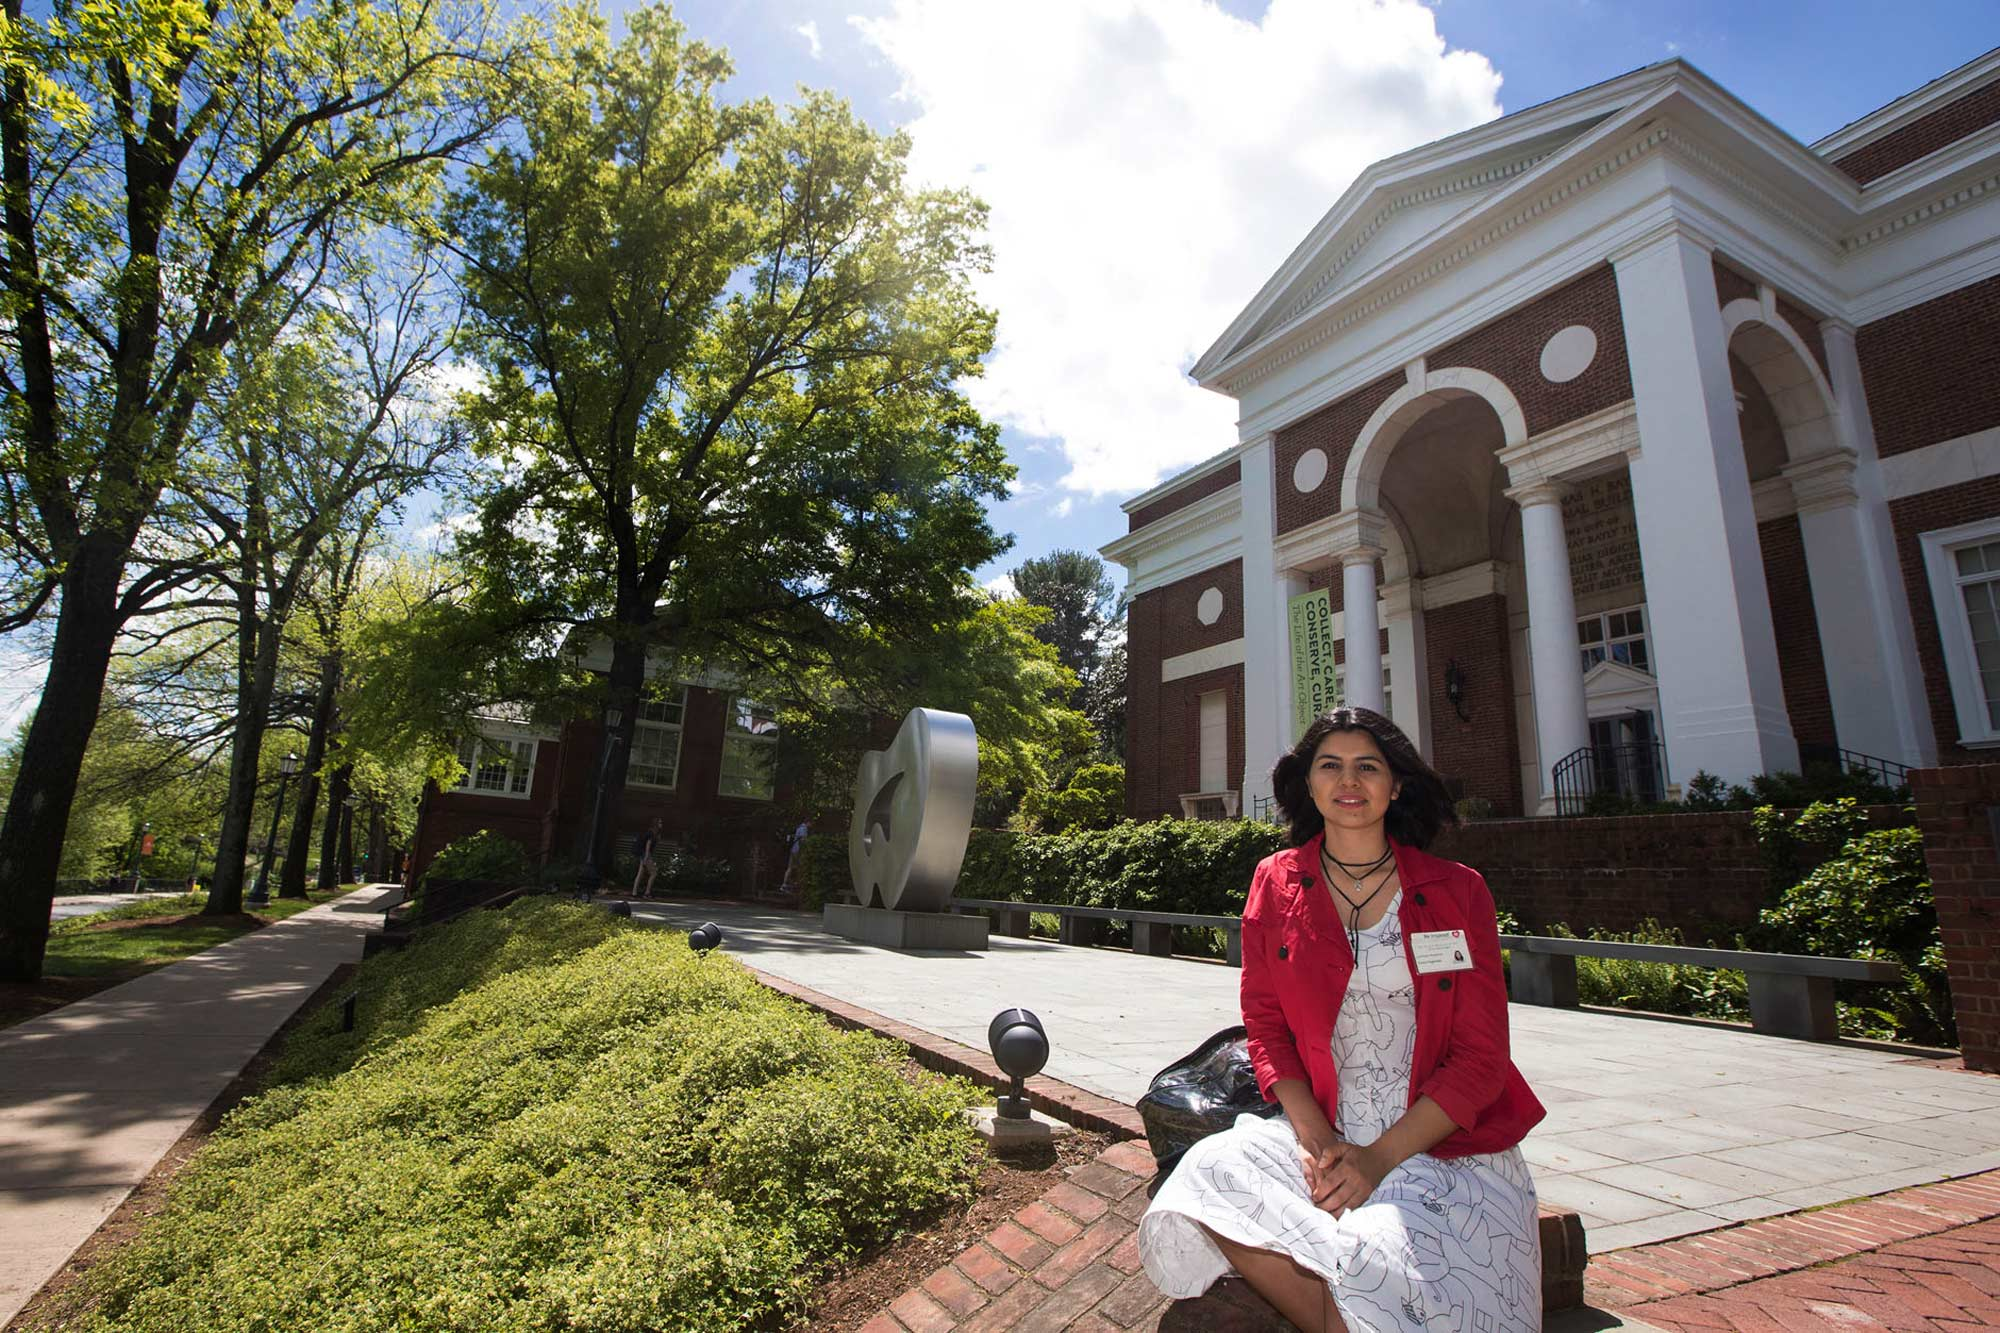 When she transferred at UVA, Haghtalab began working at The Fralin Museum of Art, an institution that she said became a second home for her on Grounds.